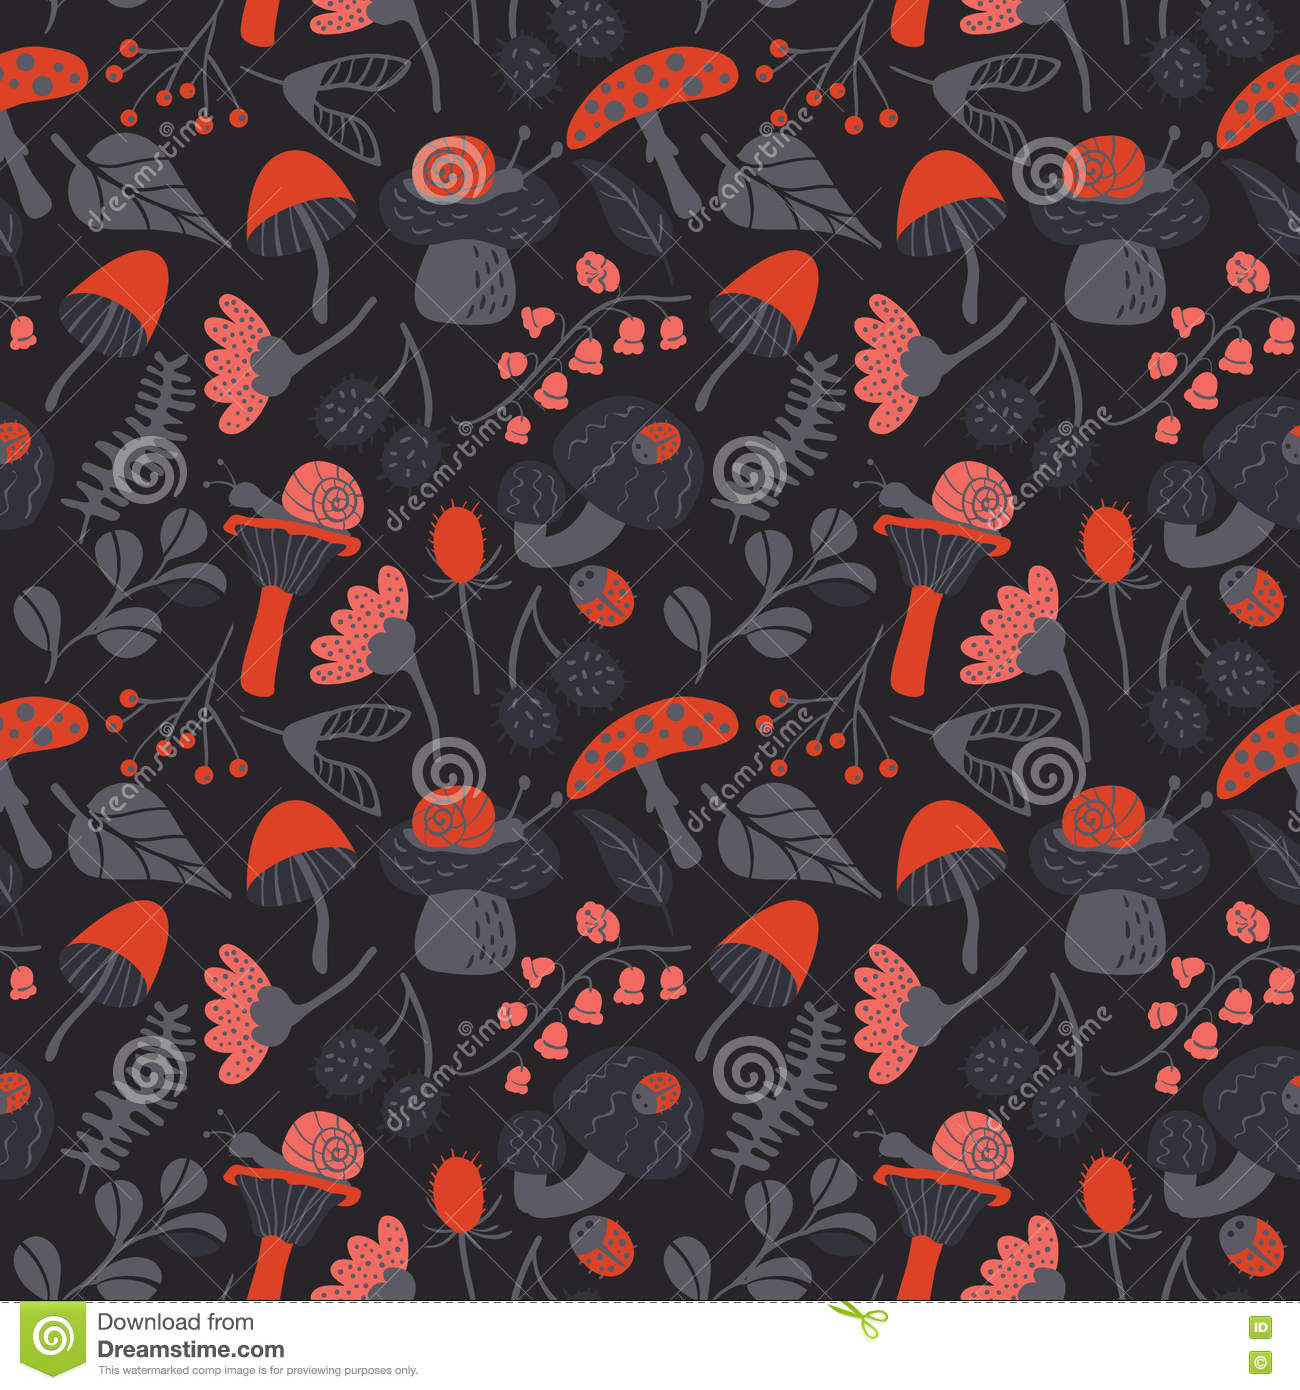 Nature Seamless Pattern With Mushroom, Ladybird, Snail ...